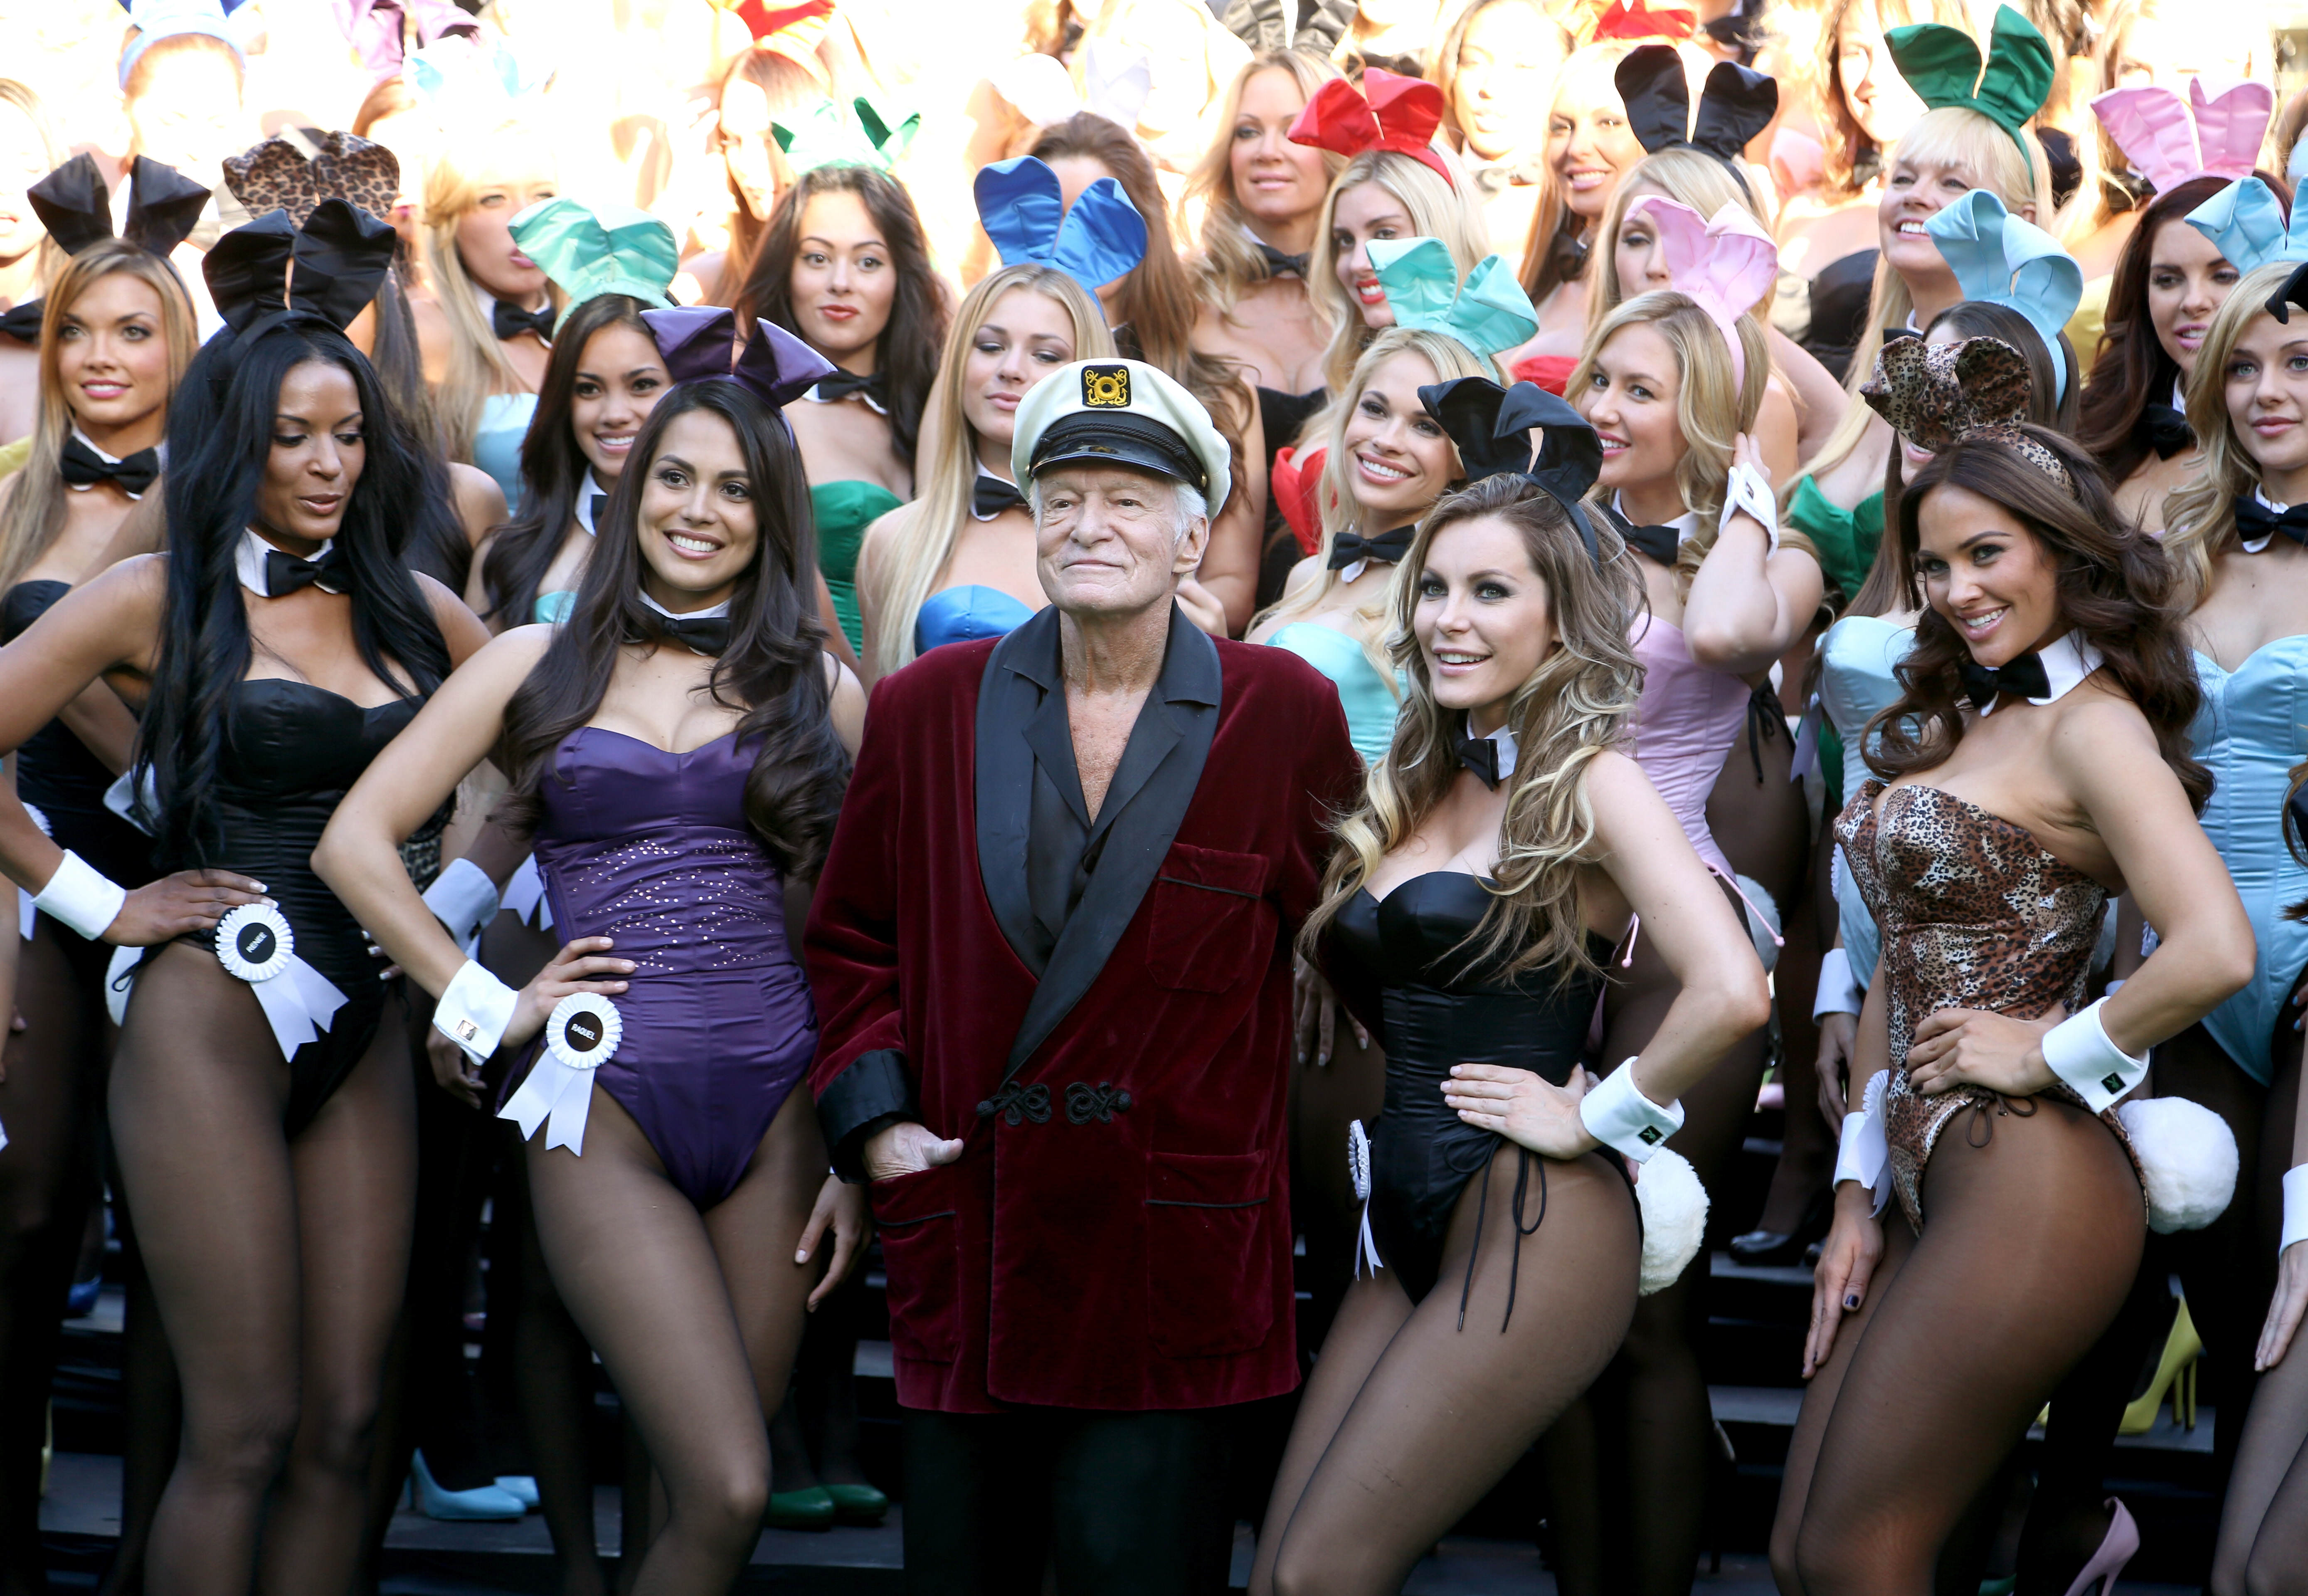 Heres How You Could Be The Next Hugh Hefner GettyImages 463118669